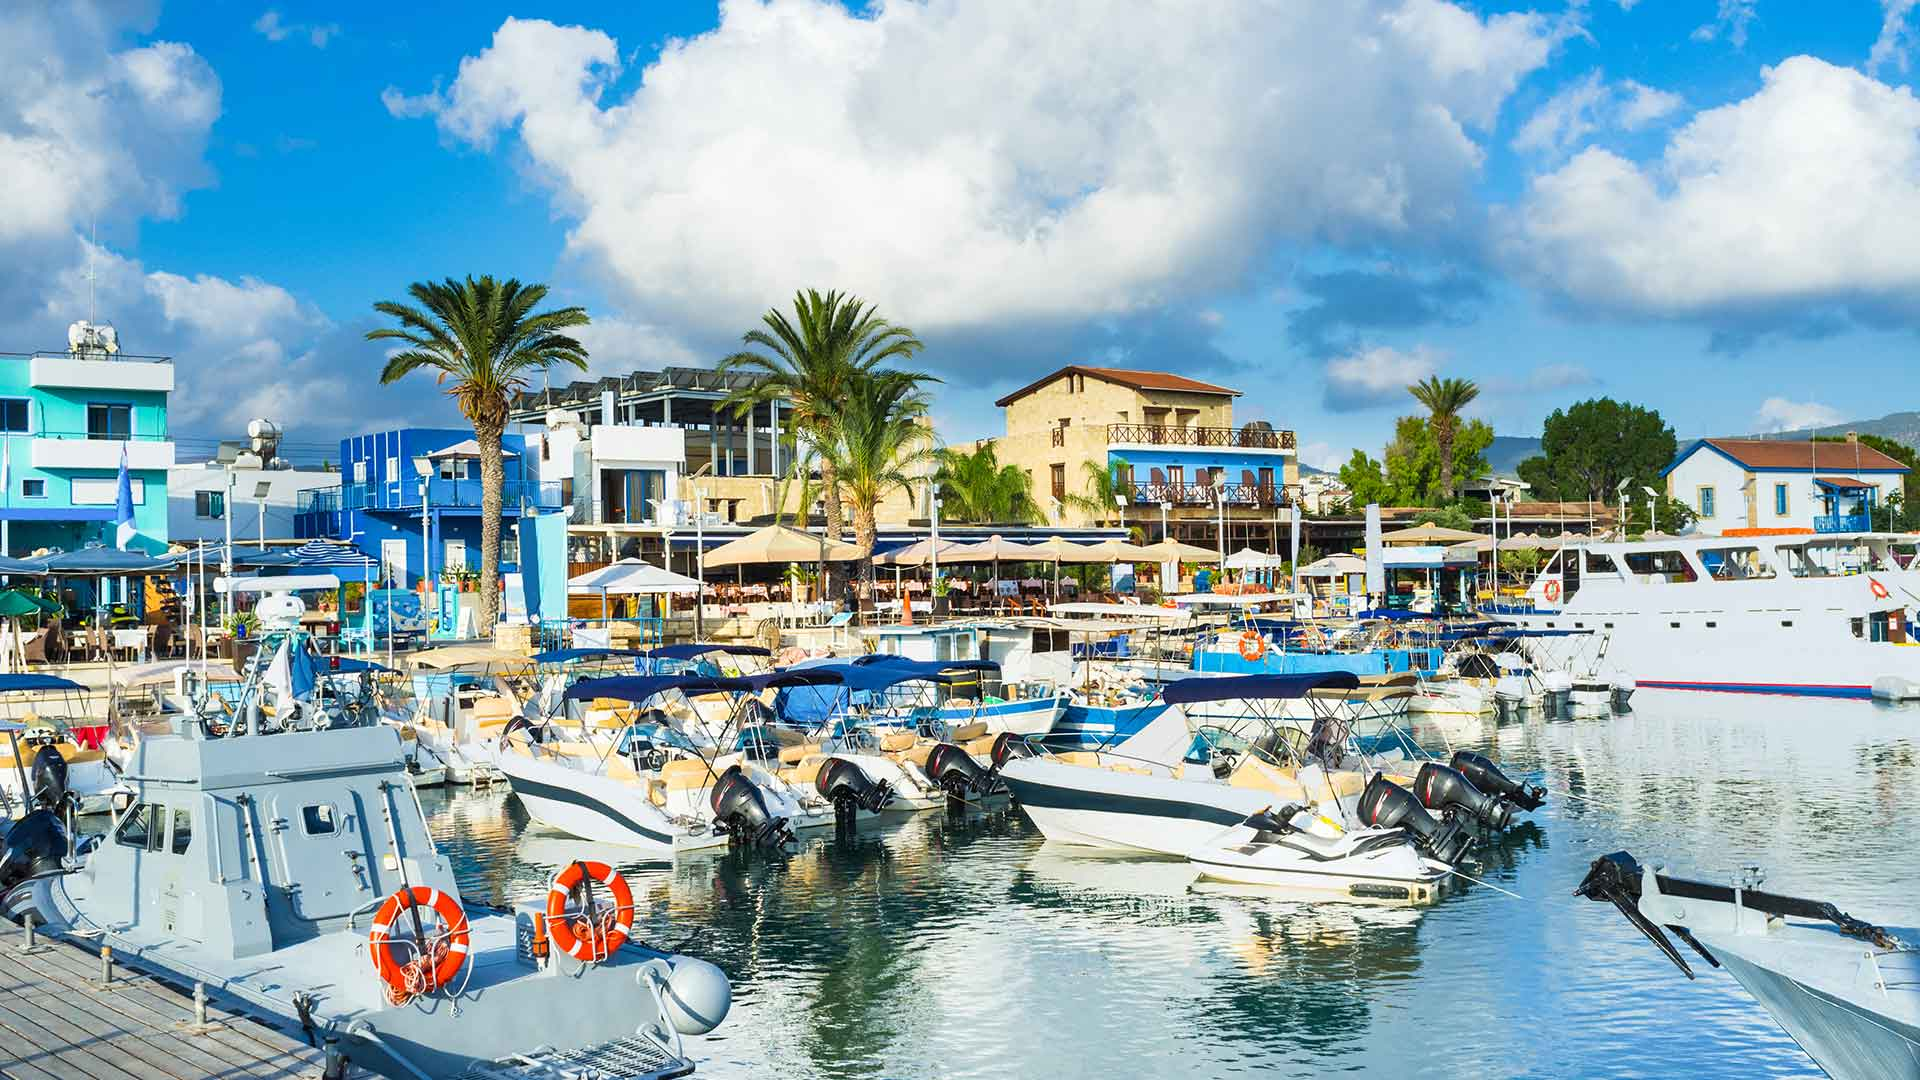 Self Drive Boat Hire in Paphos with Latchi Watersports Centre. Where the Land ends, the fun begins!